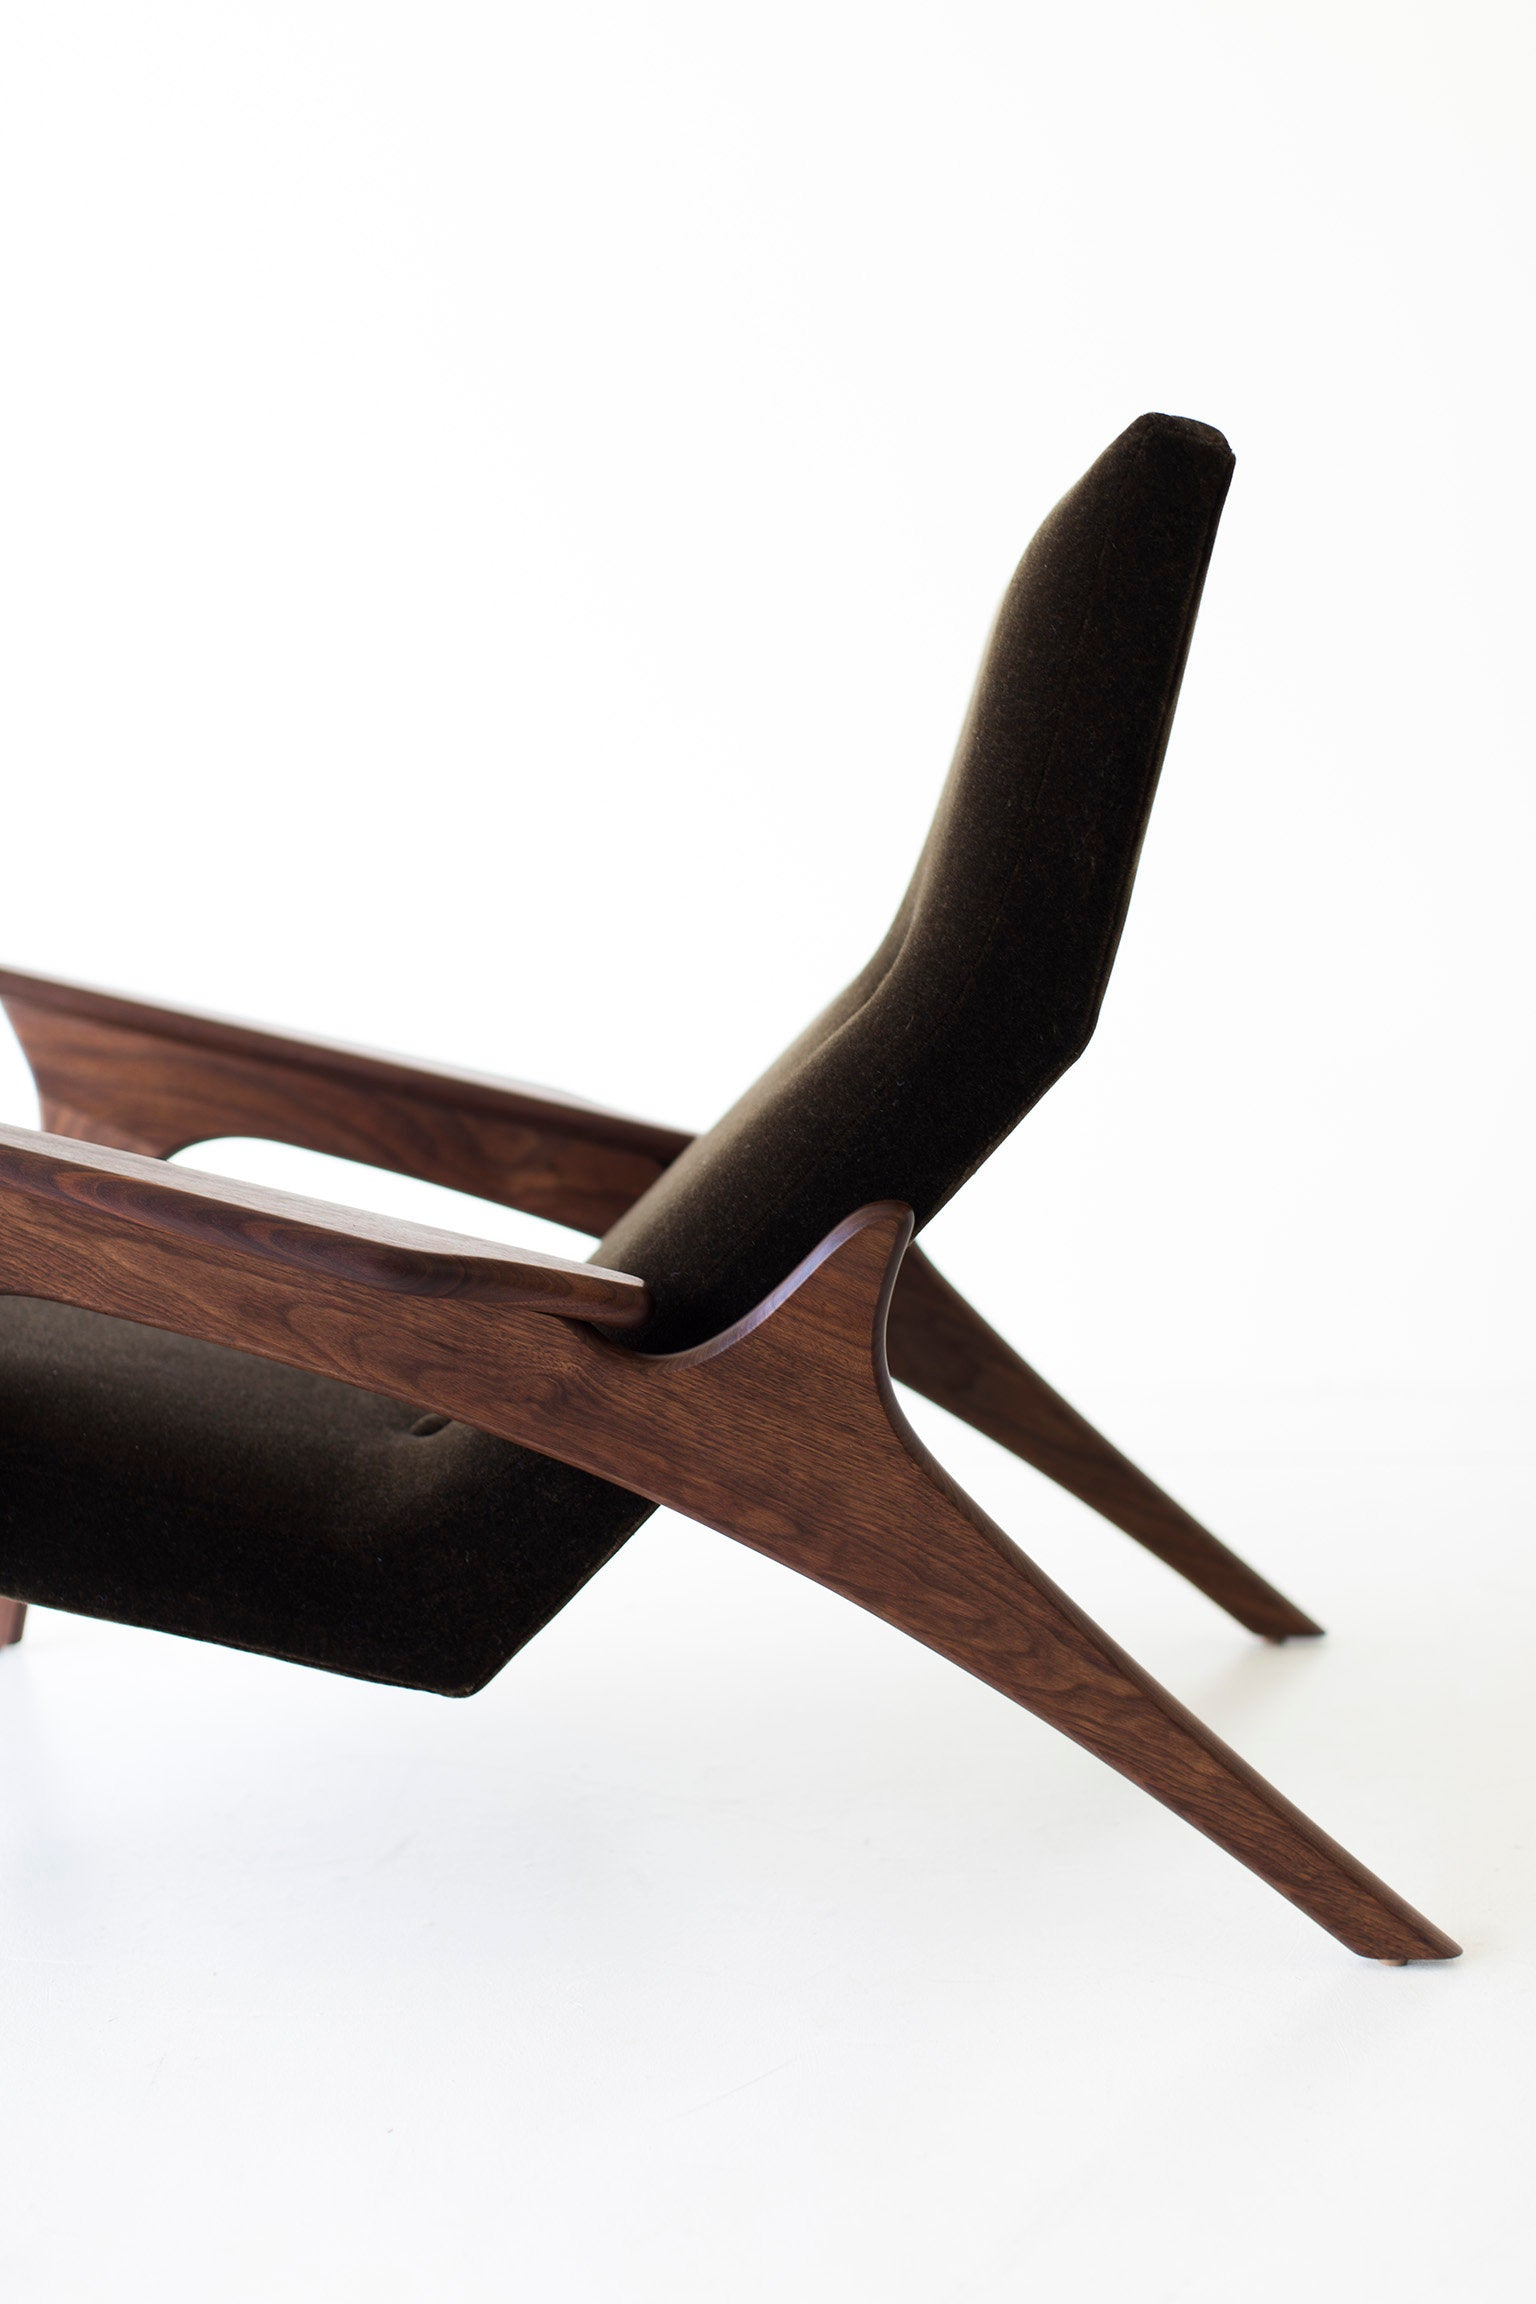 modern-wooden-arm-wing-chair-1521-craft-associates-furniture-01